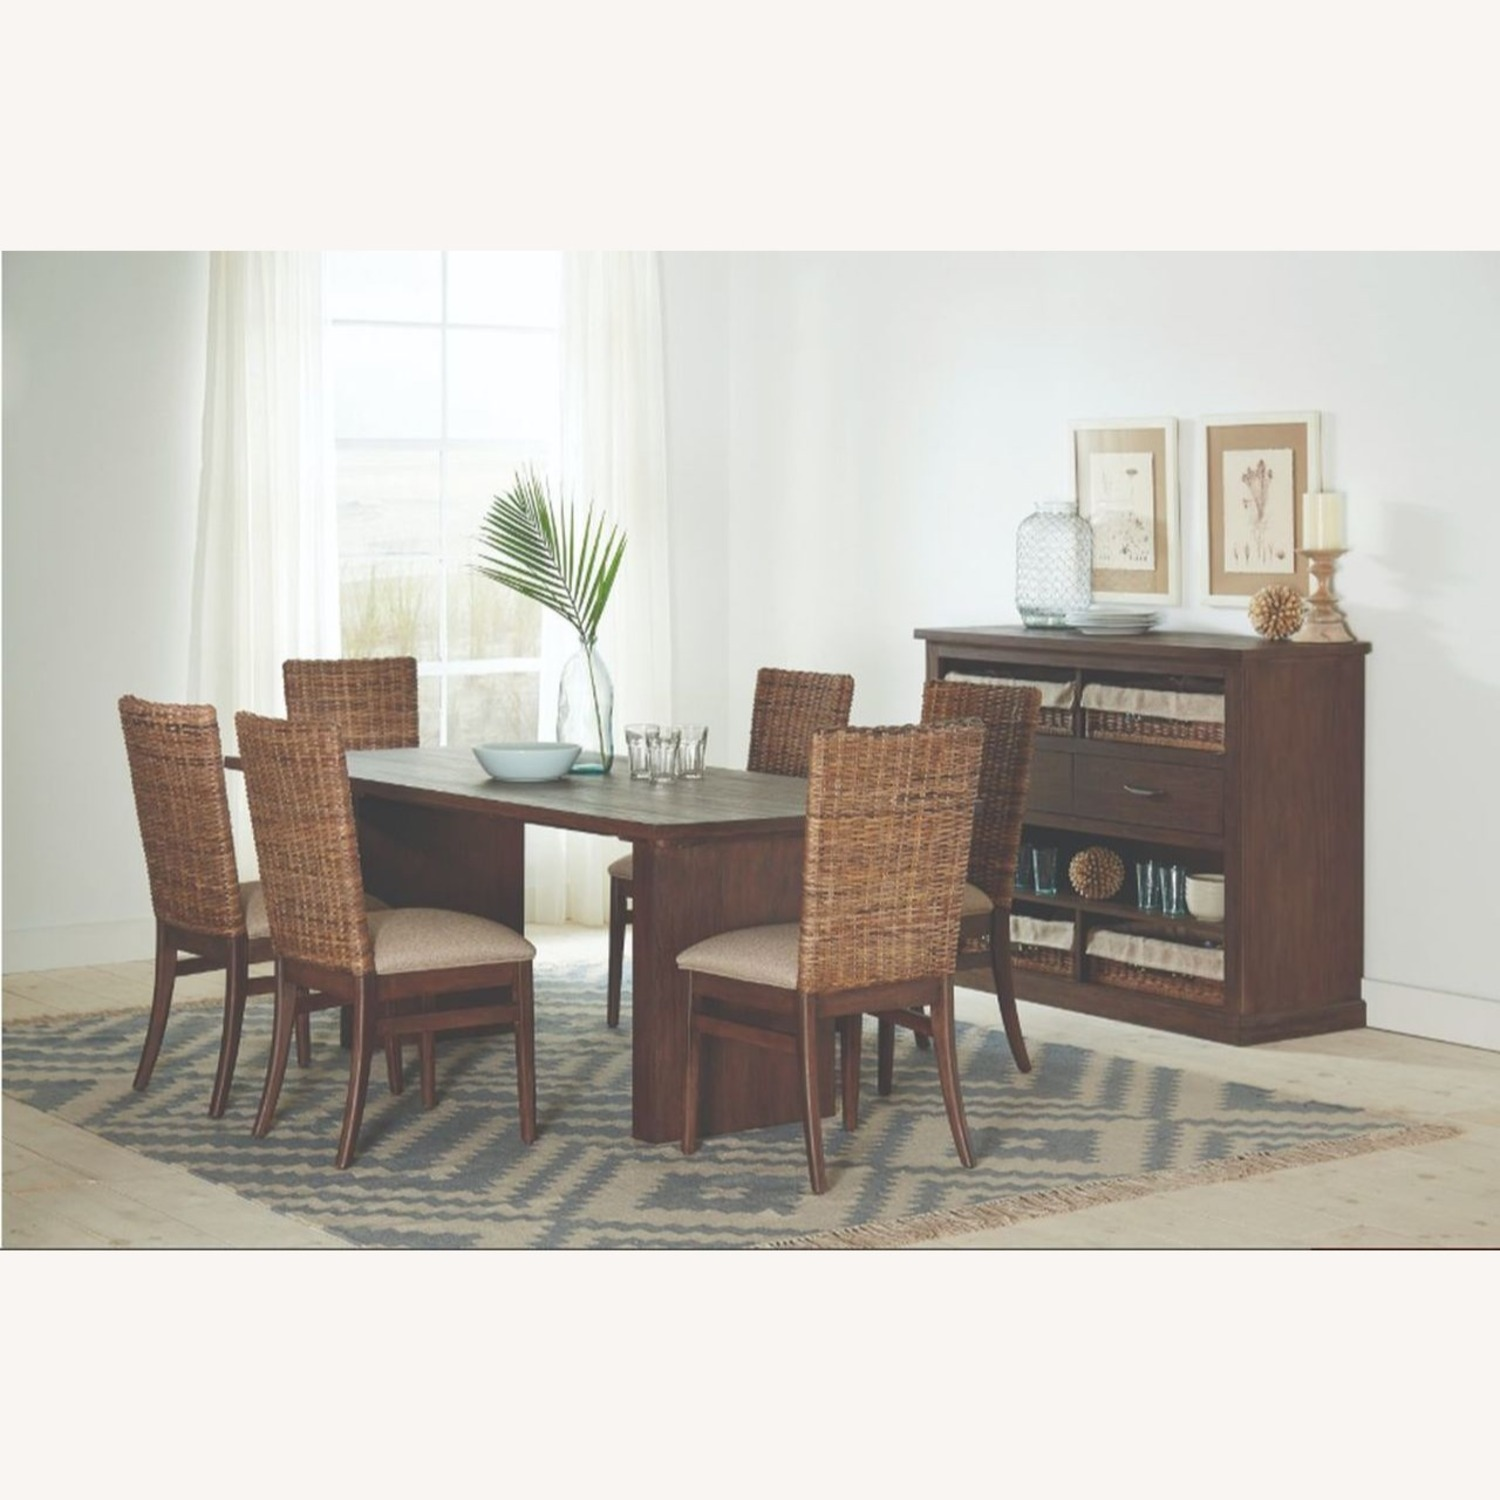 Modern Dining Table In Solid Mahogany - image-4